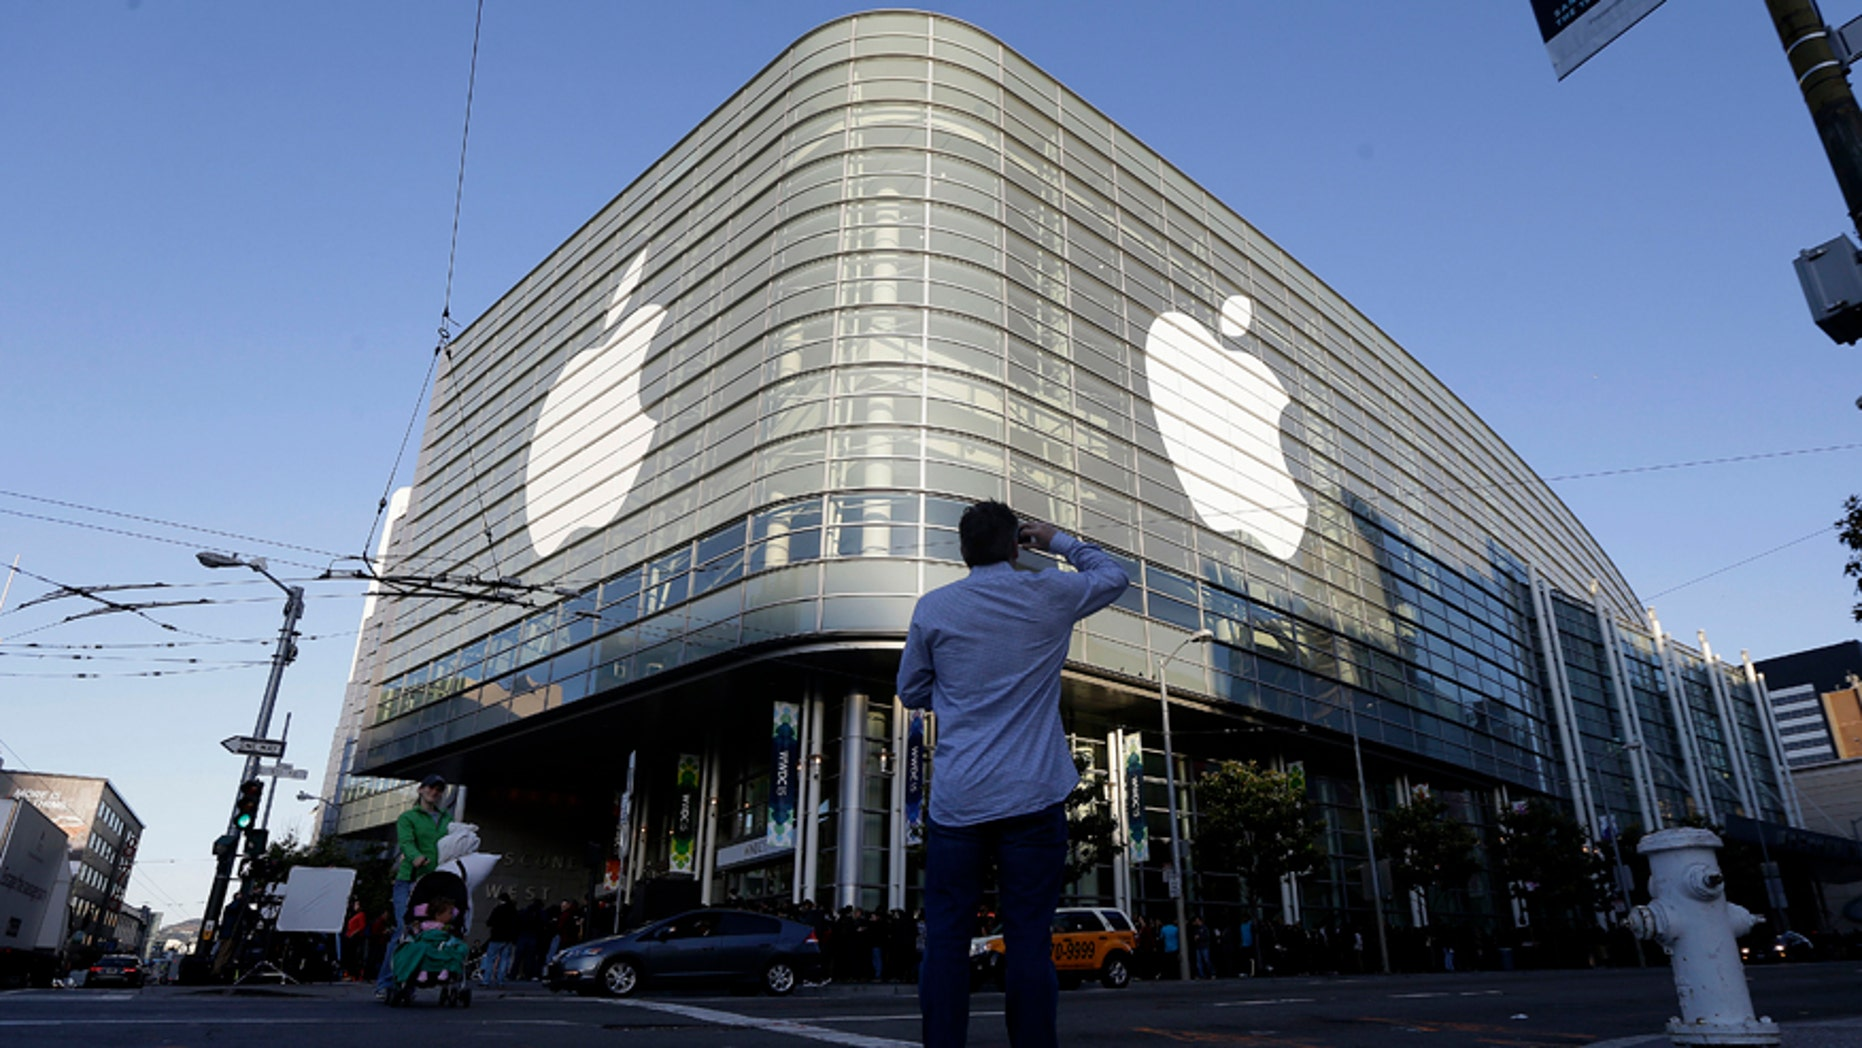 File photo: Apple logos adorn the exterior of the Moscone West building on the first day of the Apple Worldwide Developers Conference in San Francisco, Monday, June 8, 2015.